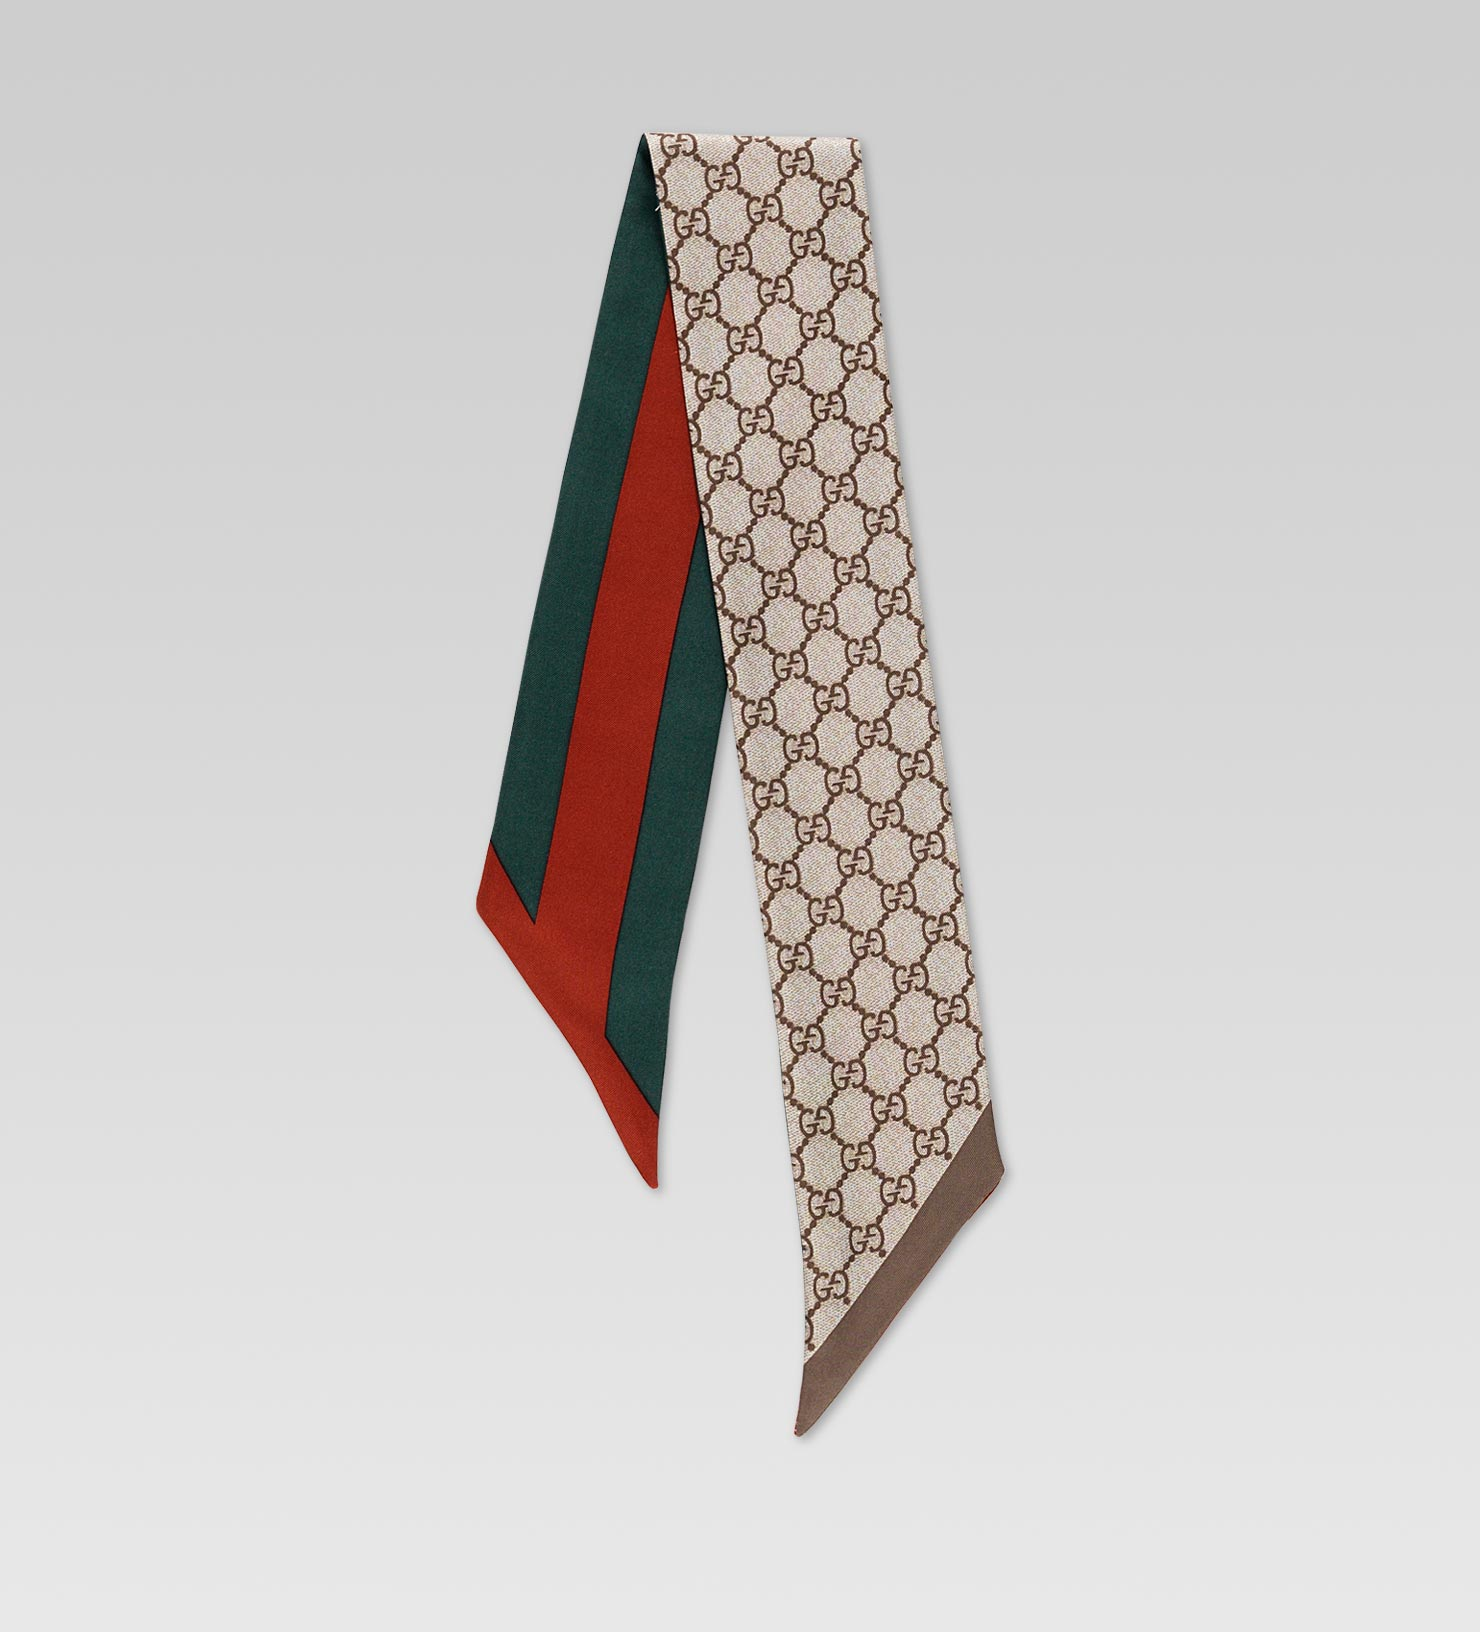 d8415f0a394 Lyst - Gucci GG Pattern Reversible Headband with Web Detail in Red